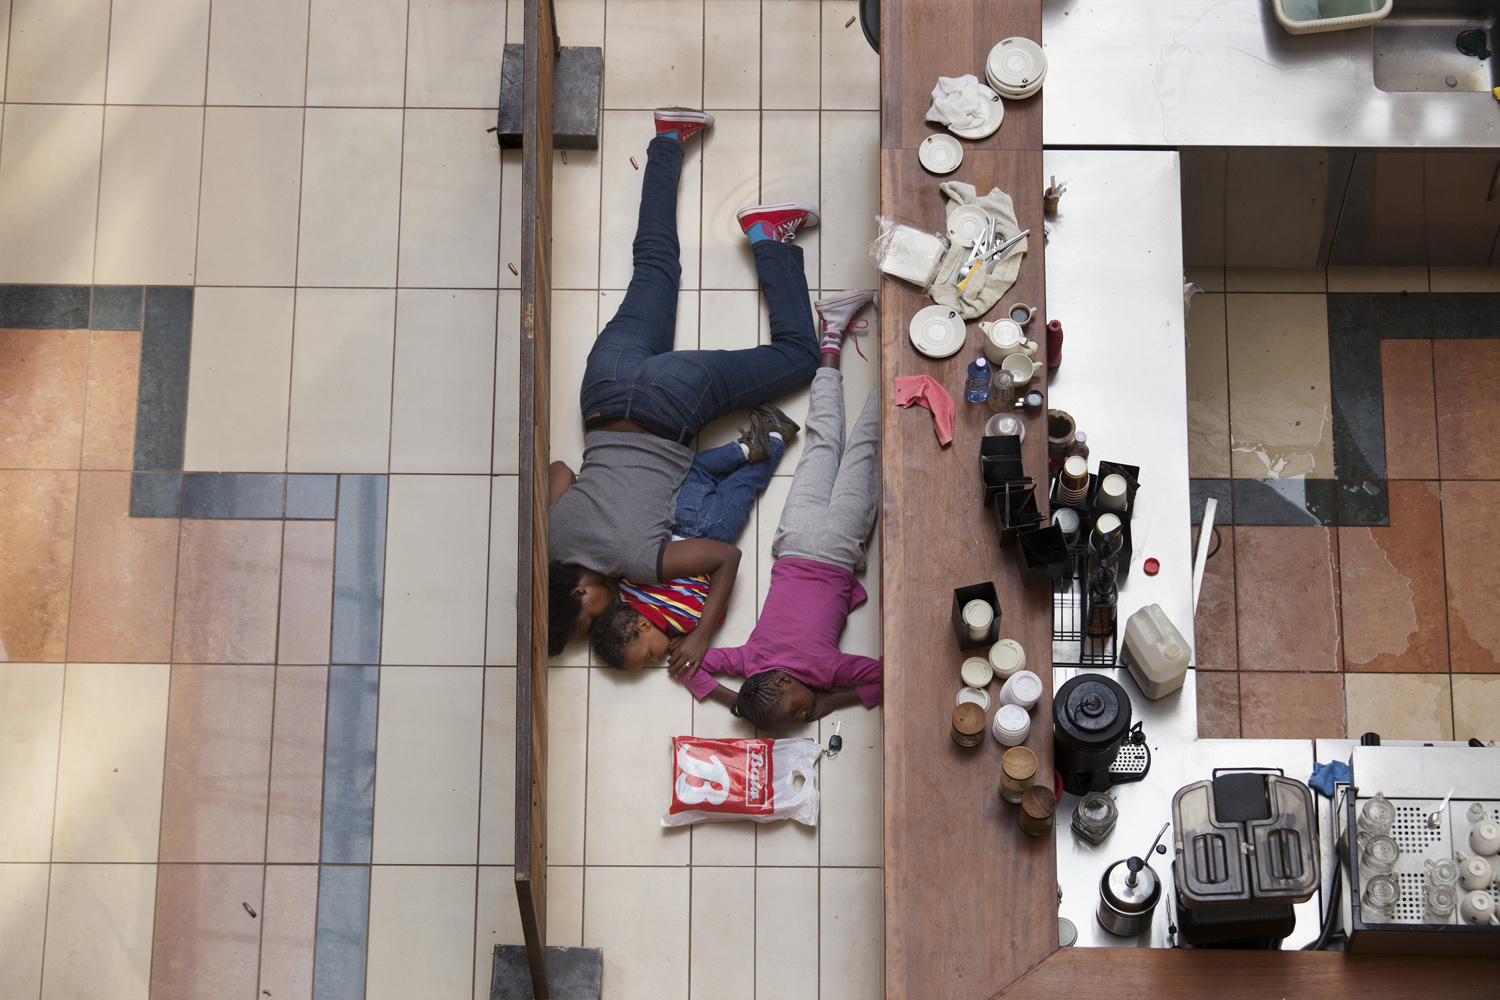 Sept. 21, 2013. A woman and children hide inside Westgate Mall in Nairobi, Kenya after a group of armed men attacked the upscale shopping center, killing at least 59 people and wounding at least 175.